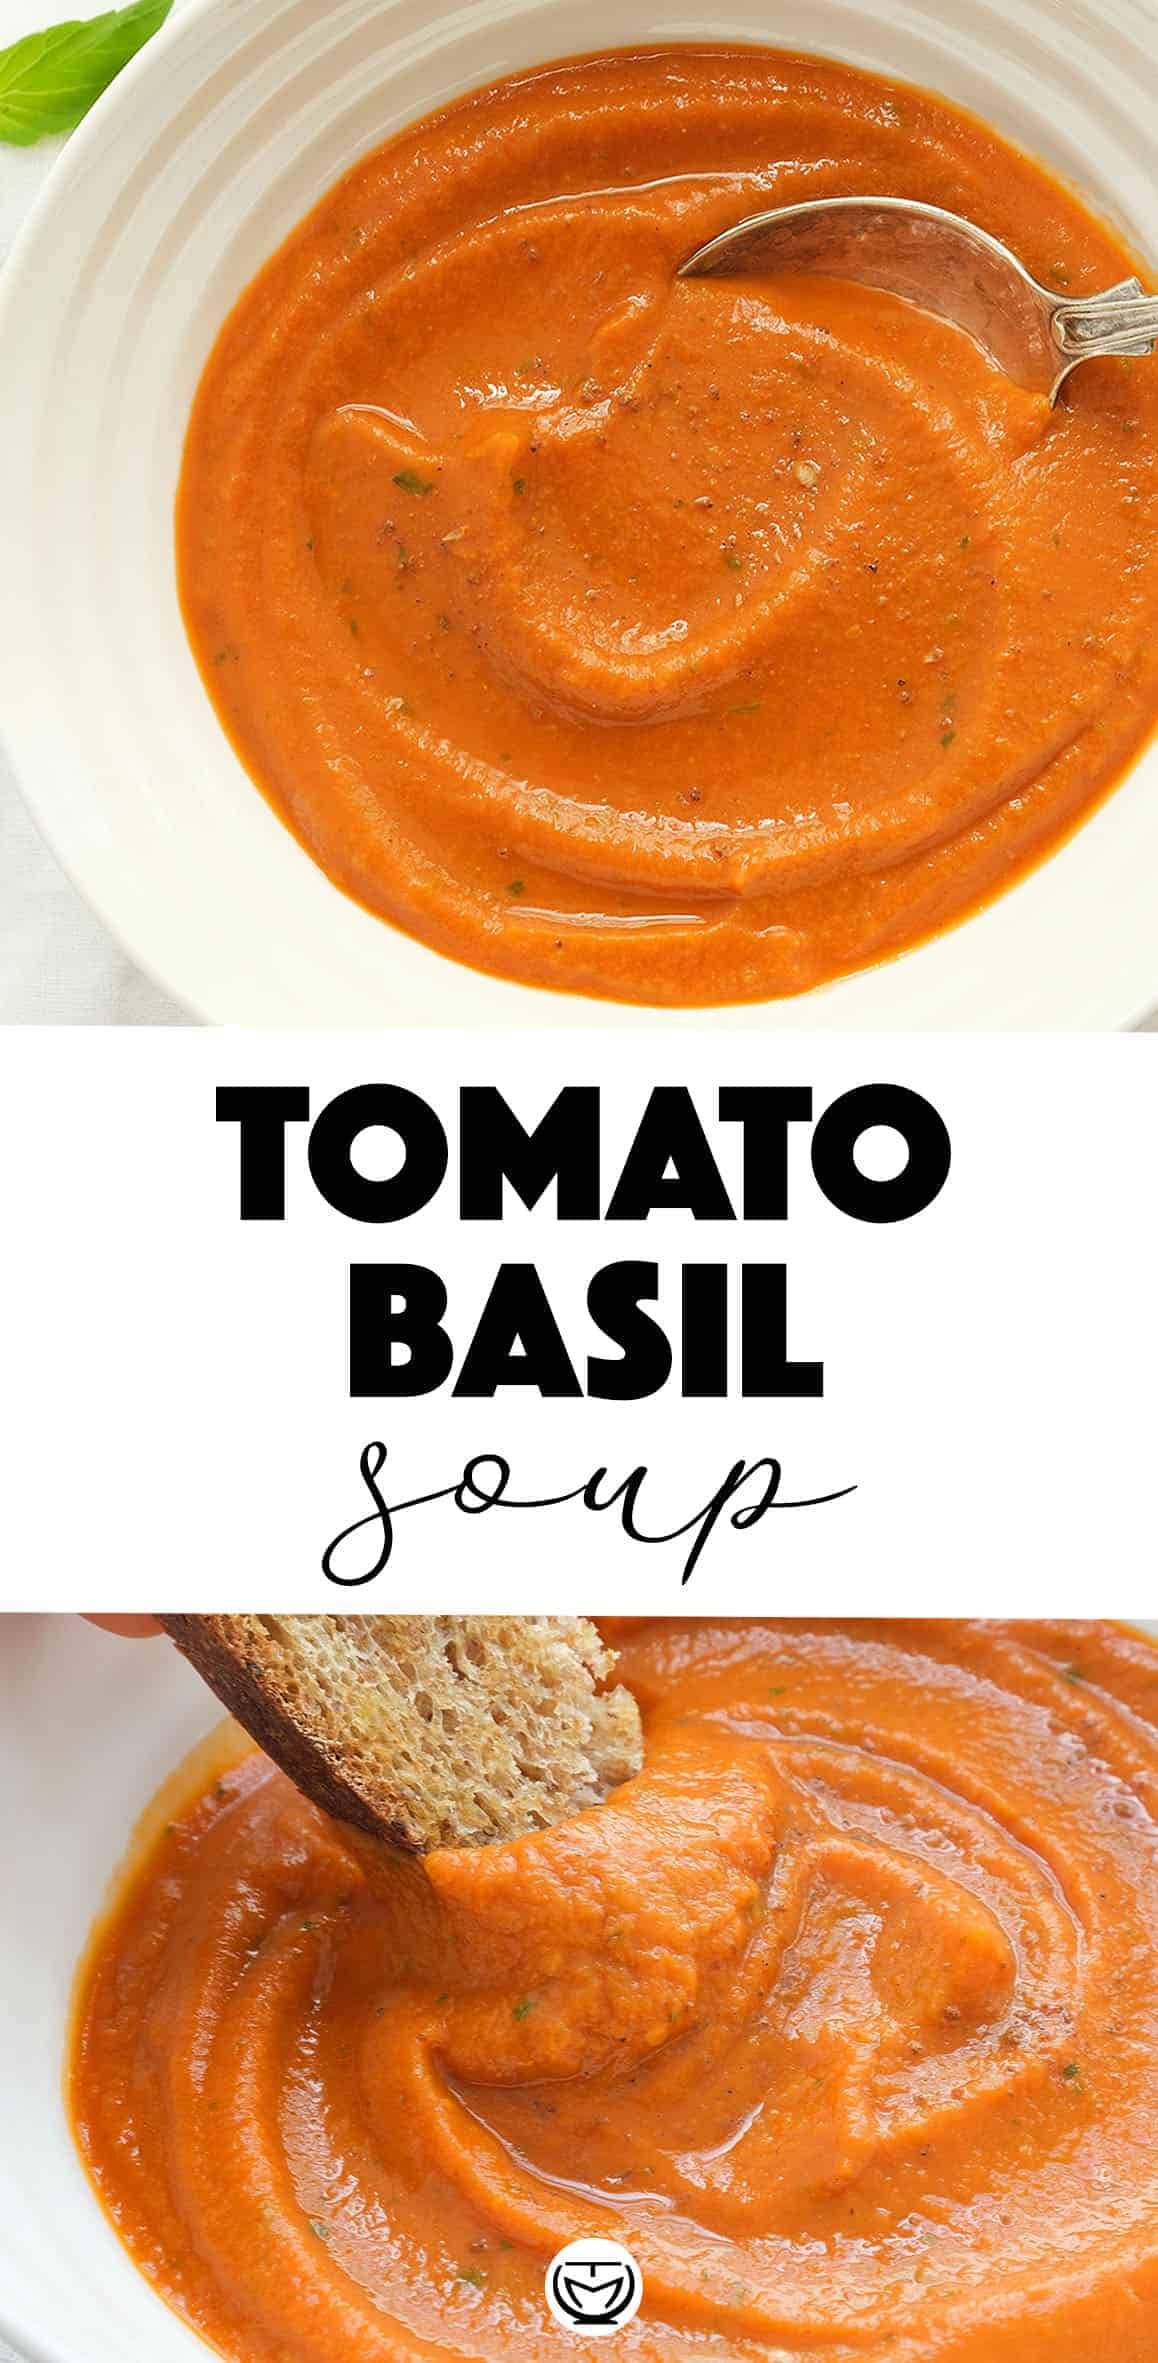 This delicious tomato basil soup is healthy, vegan, gluten free and so convenient.Super easy to make, inexpensive and ready in less than 30 minutes, this tomato soup is definitely a no brainer! #souprecipes #veganrecipes #tomatobasilsoup